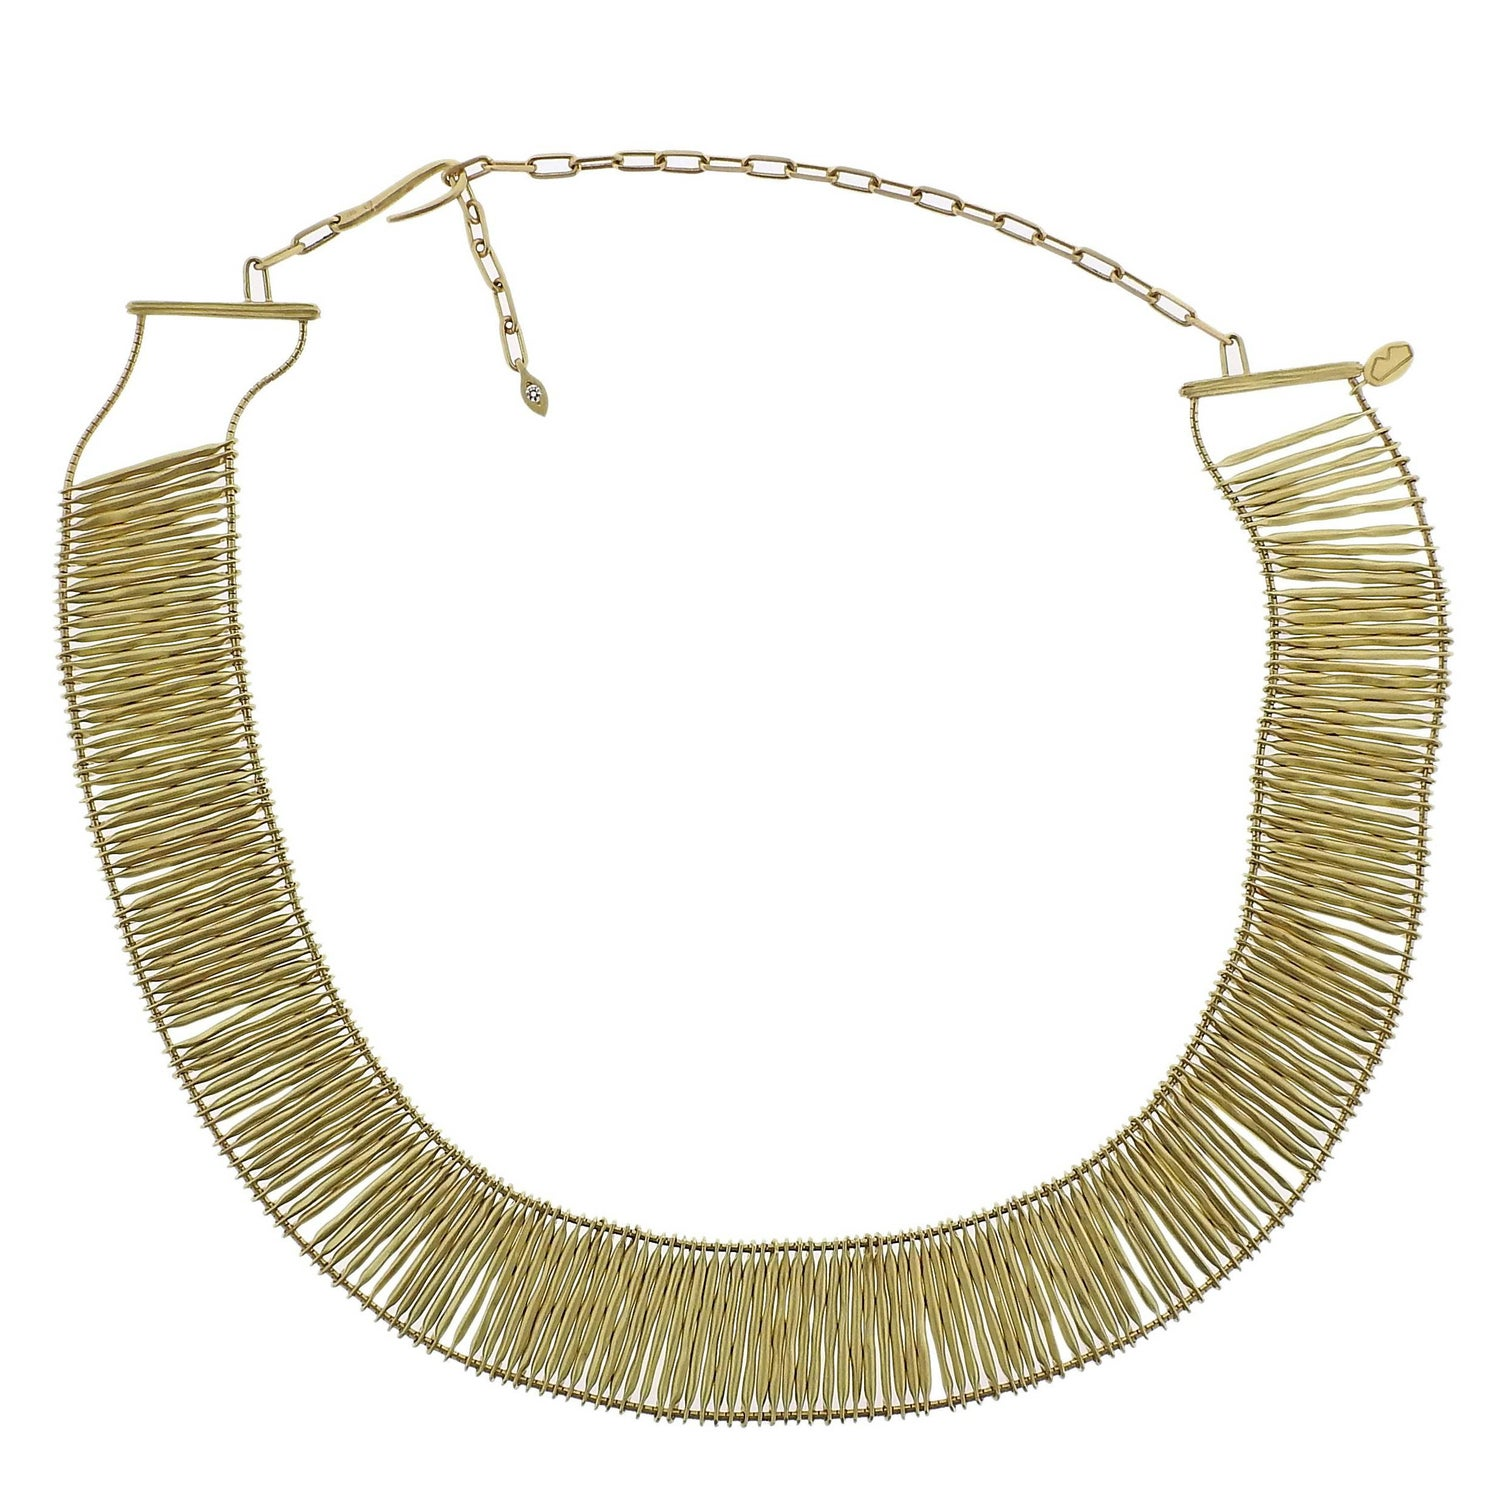 H. Stern Necklaces - 14 For Sale at 1stdibs